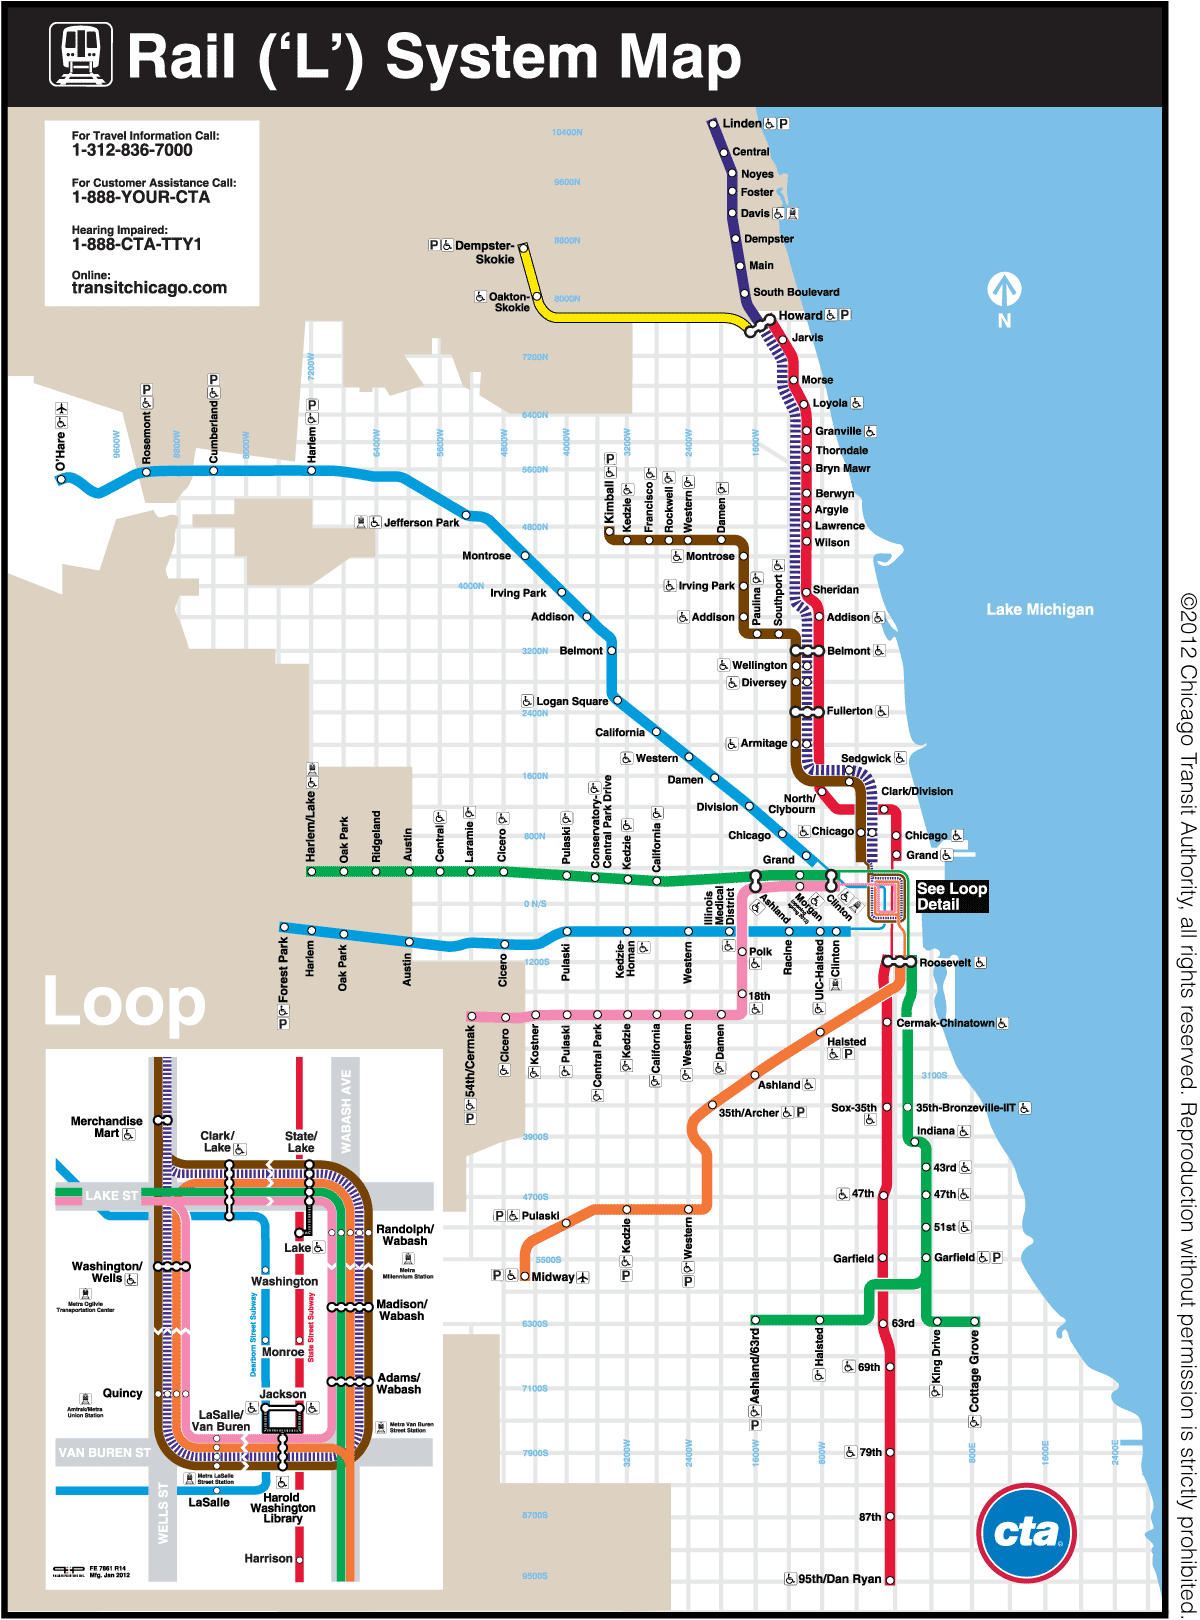 Transit Chicago Map.The Transit Tourist Chicago Ill The Source